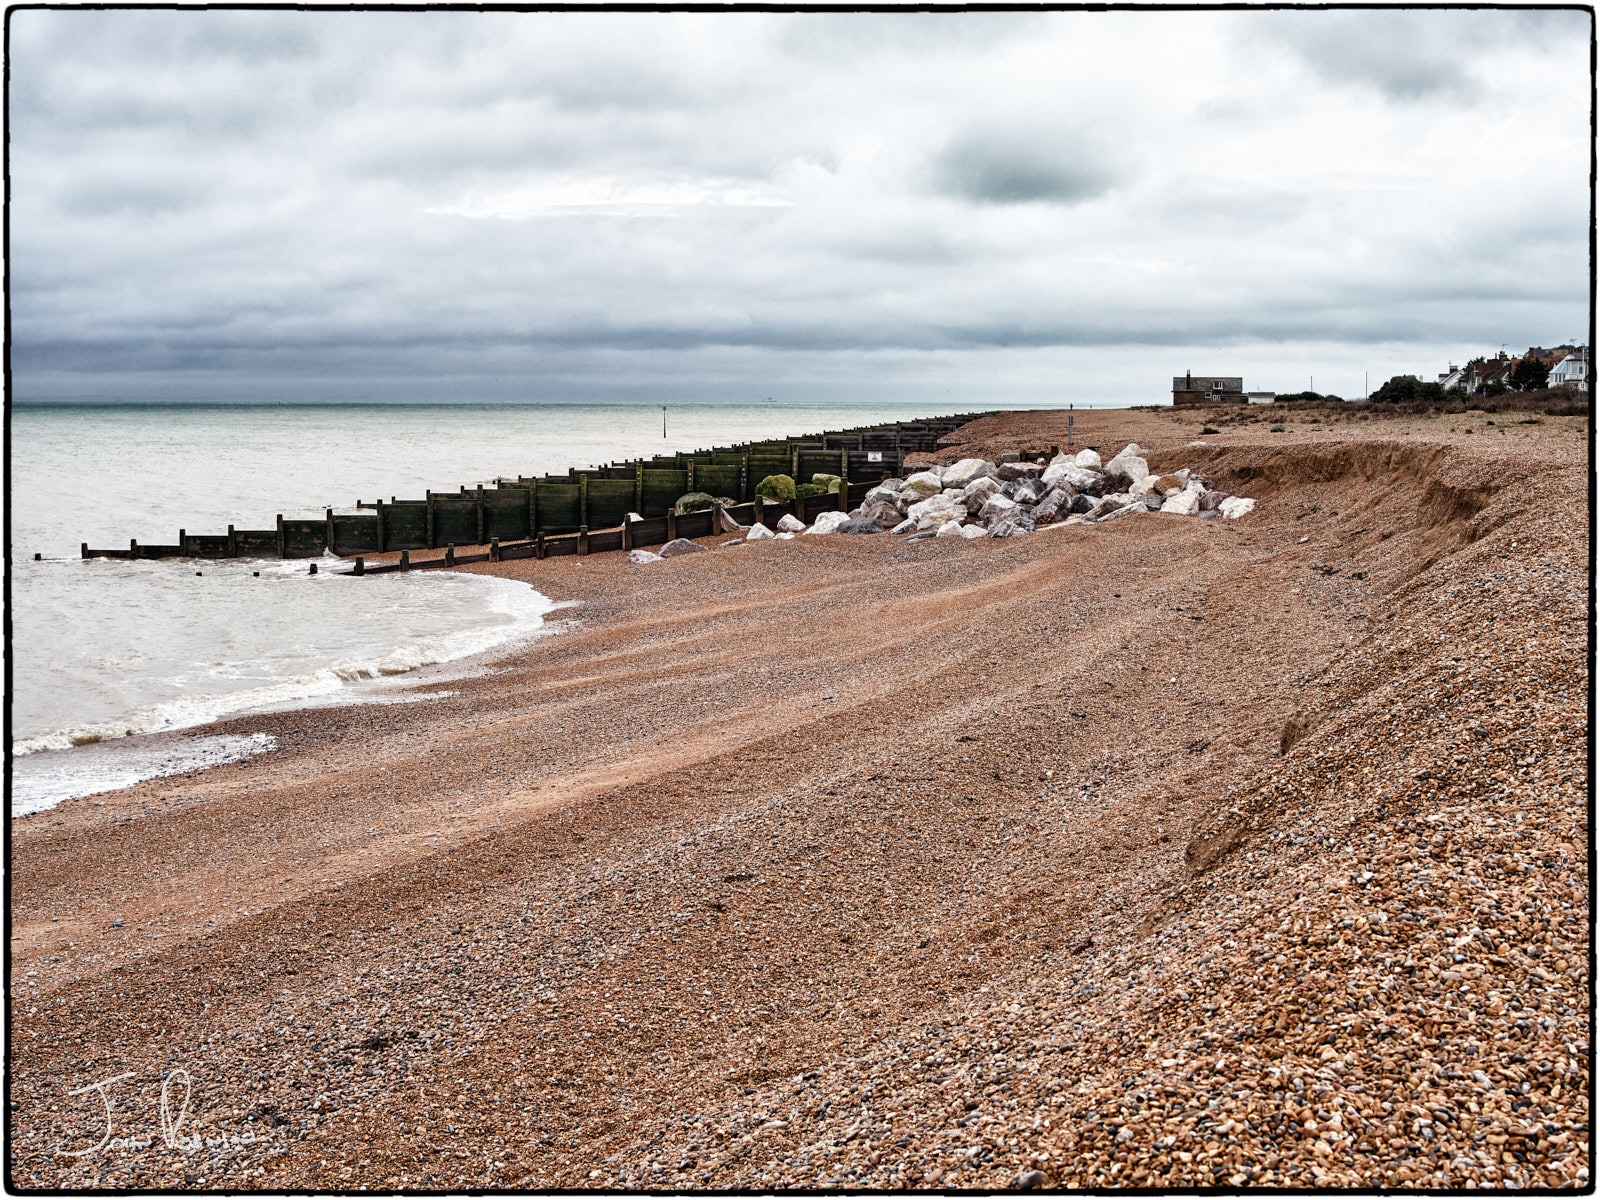 The sea eats away at the shingle no matter how often the bulldozers come around